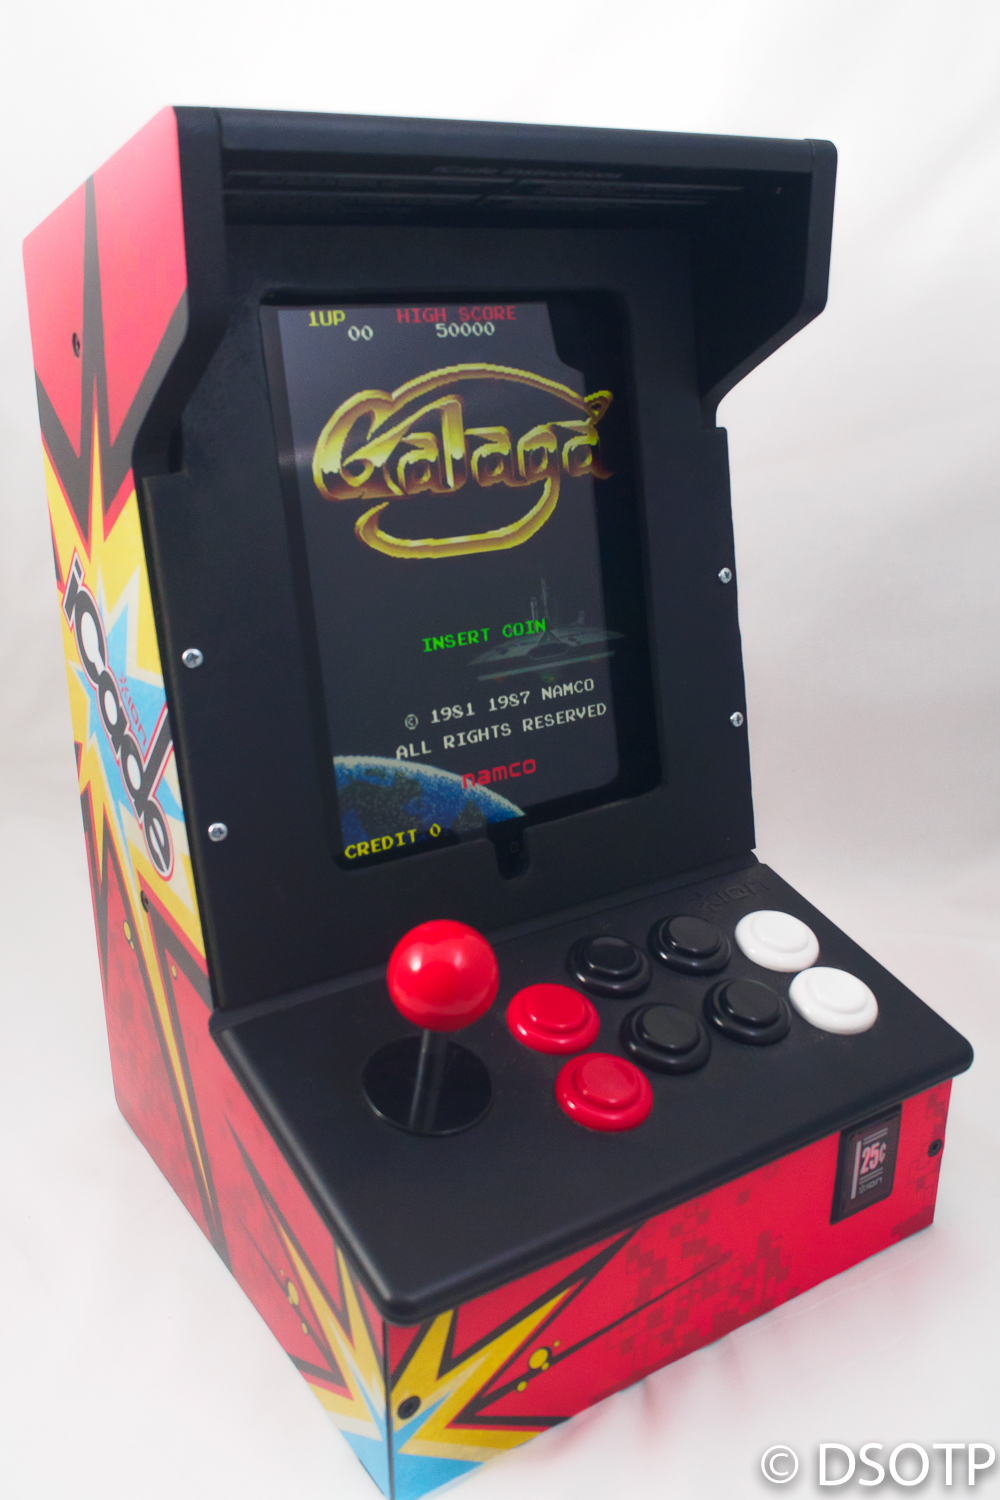 ...complete with Galaga